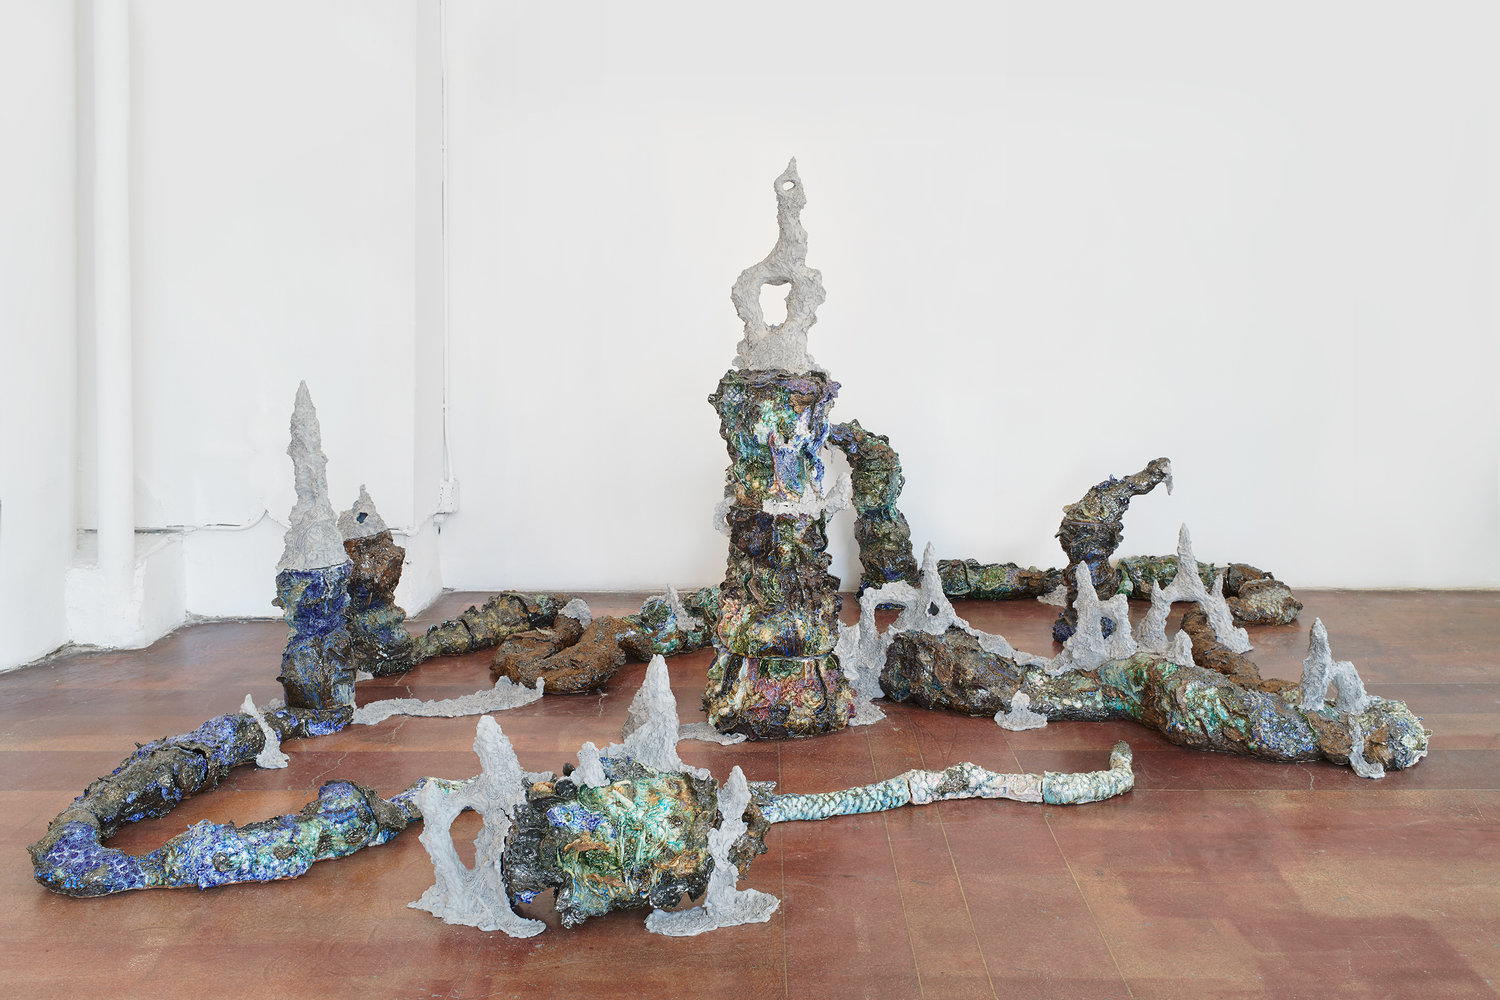 Heidi Lau,  The Primordial Molder,  2018. Glazed ceramics and raw clay, dimensions variable. Courtesy of Geary.